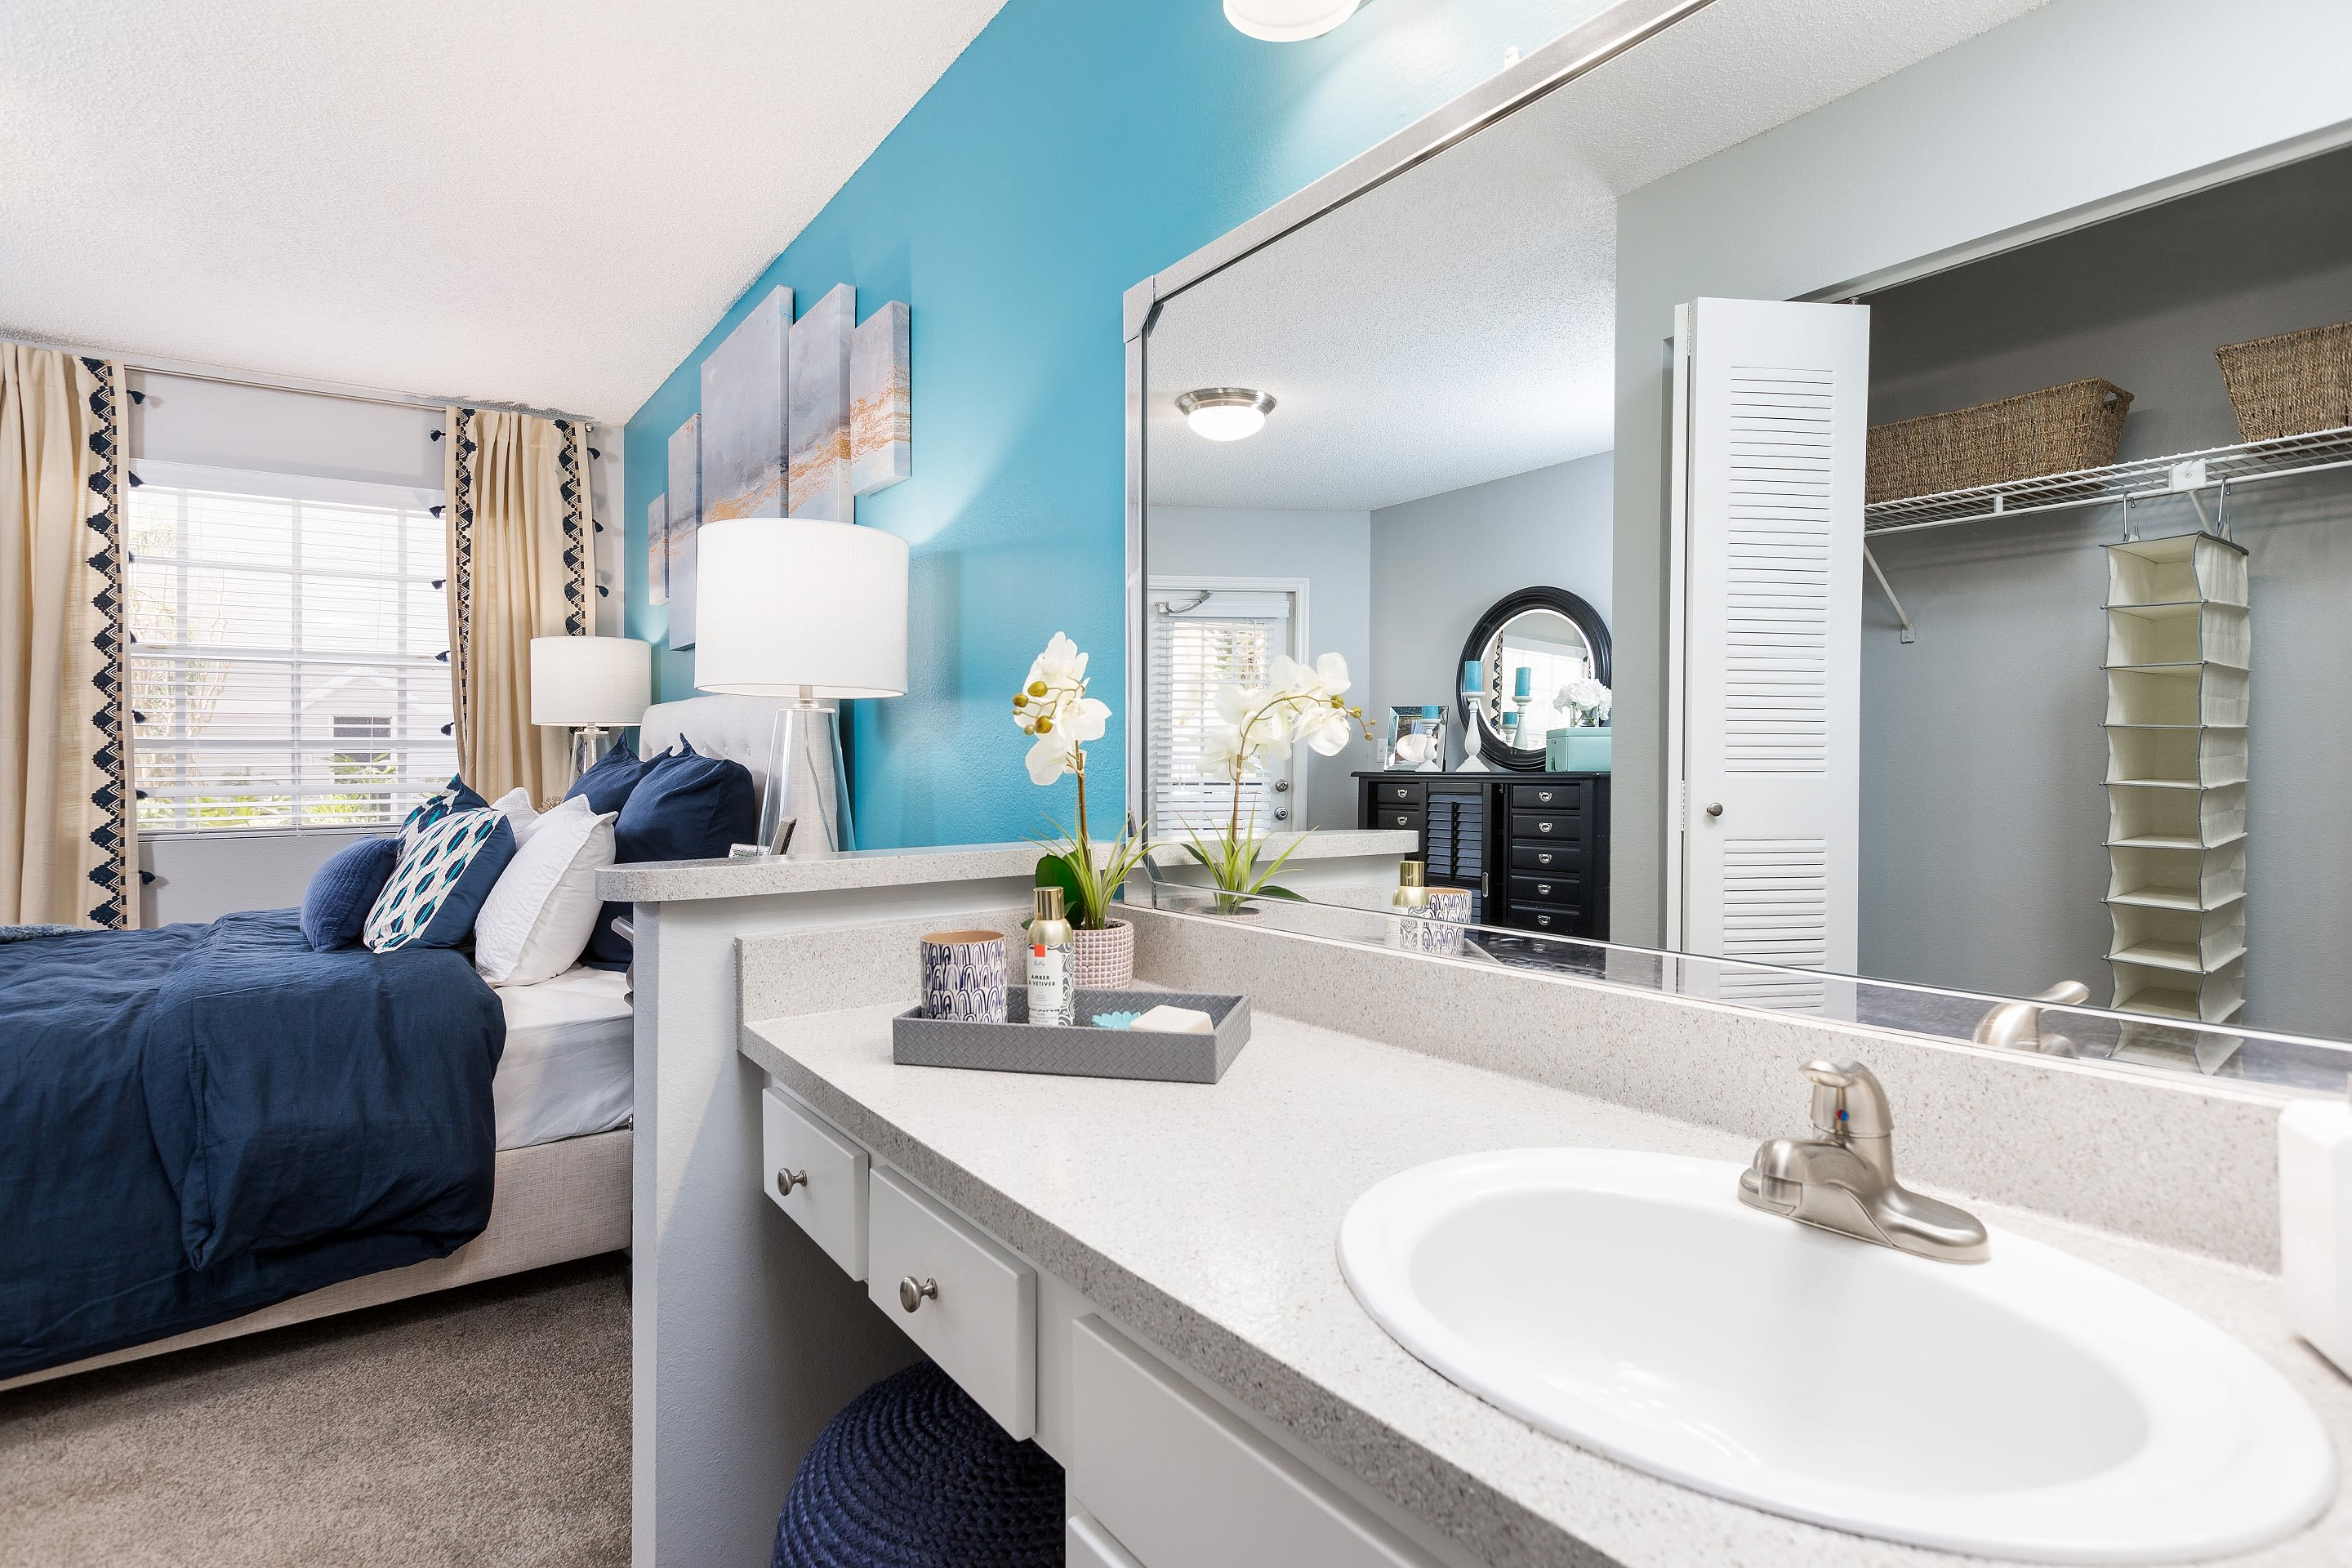 Model bedroom with attached bathroom at Reserve at Lake Irene in Casselberry, Florida